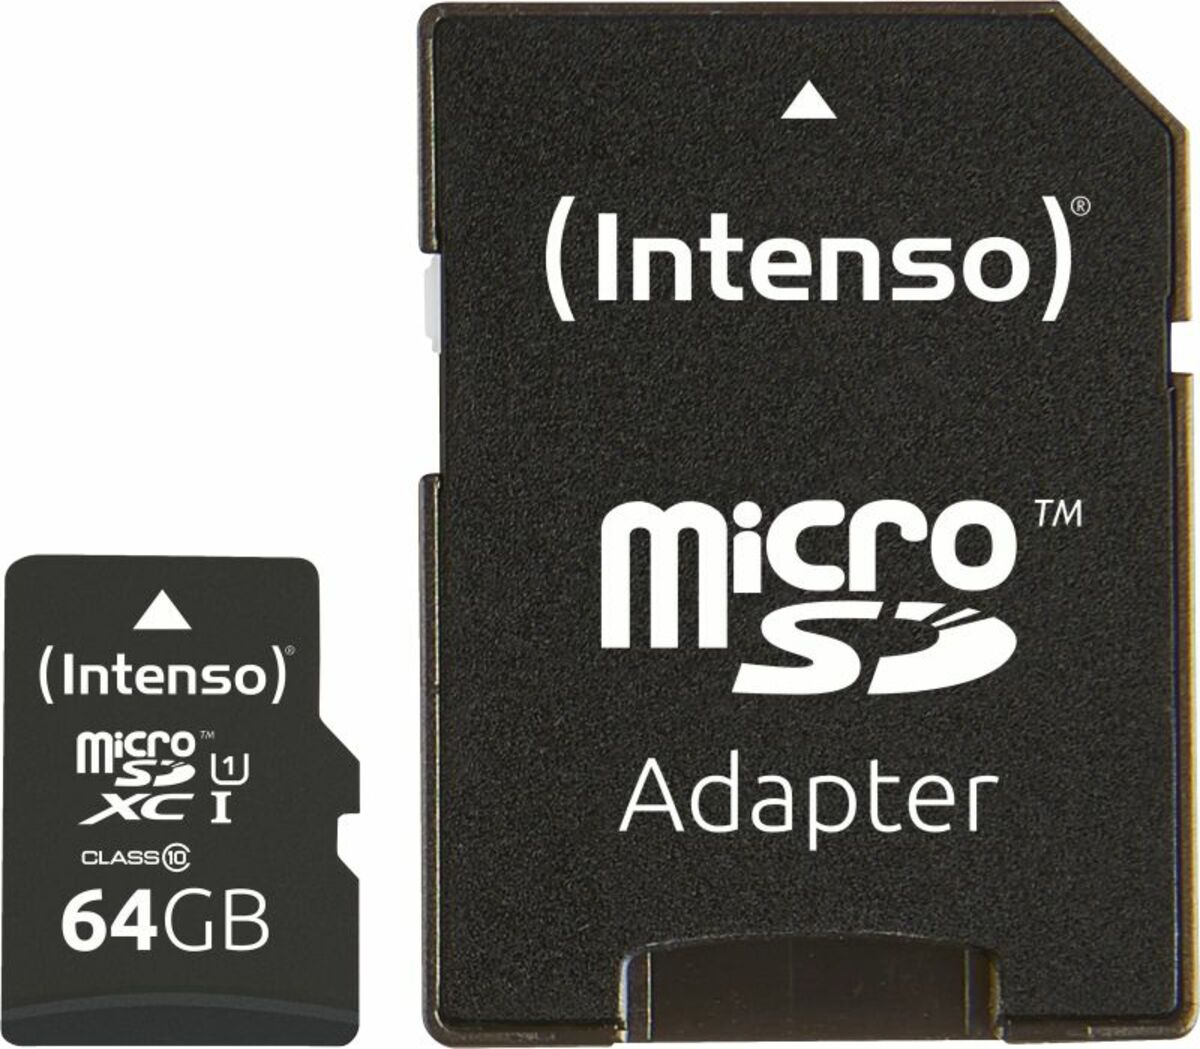 Bild 1 von Intenso Micro SD Card 64GB UHS-I inkl. SD Adapter